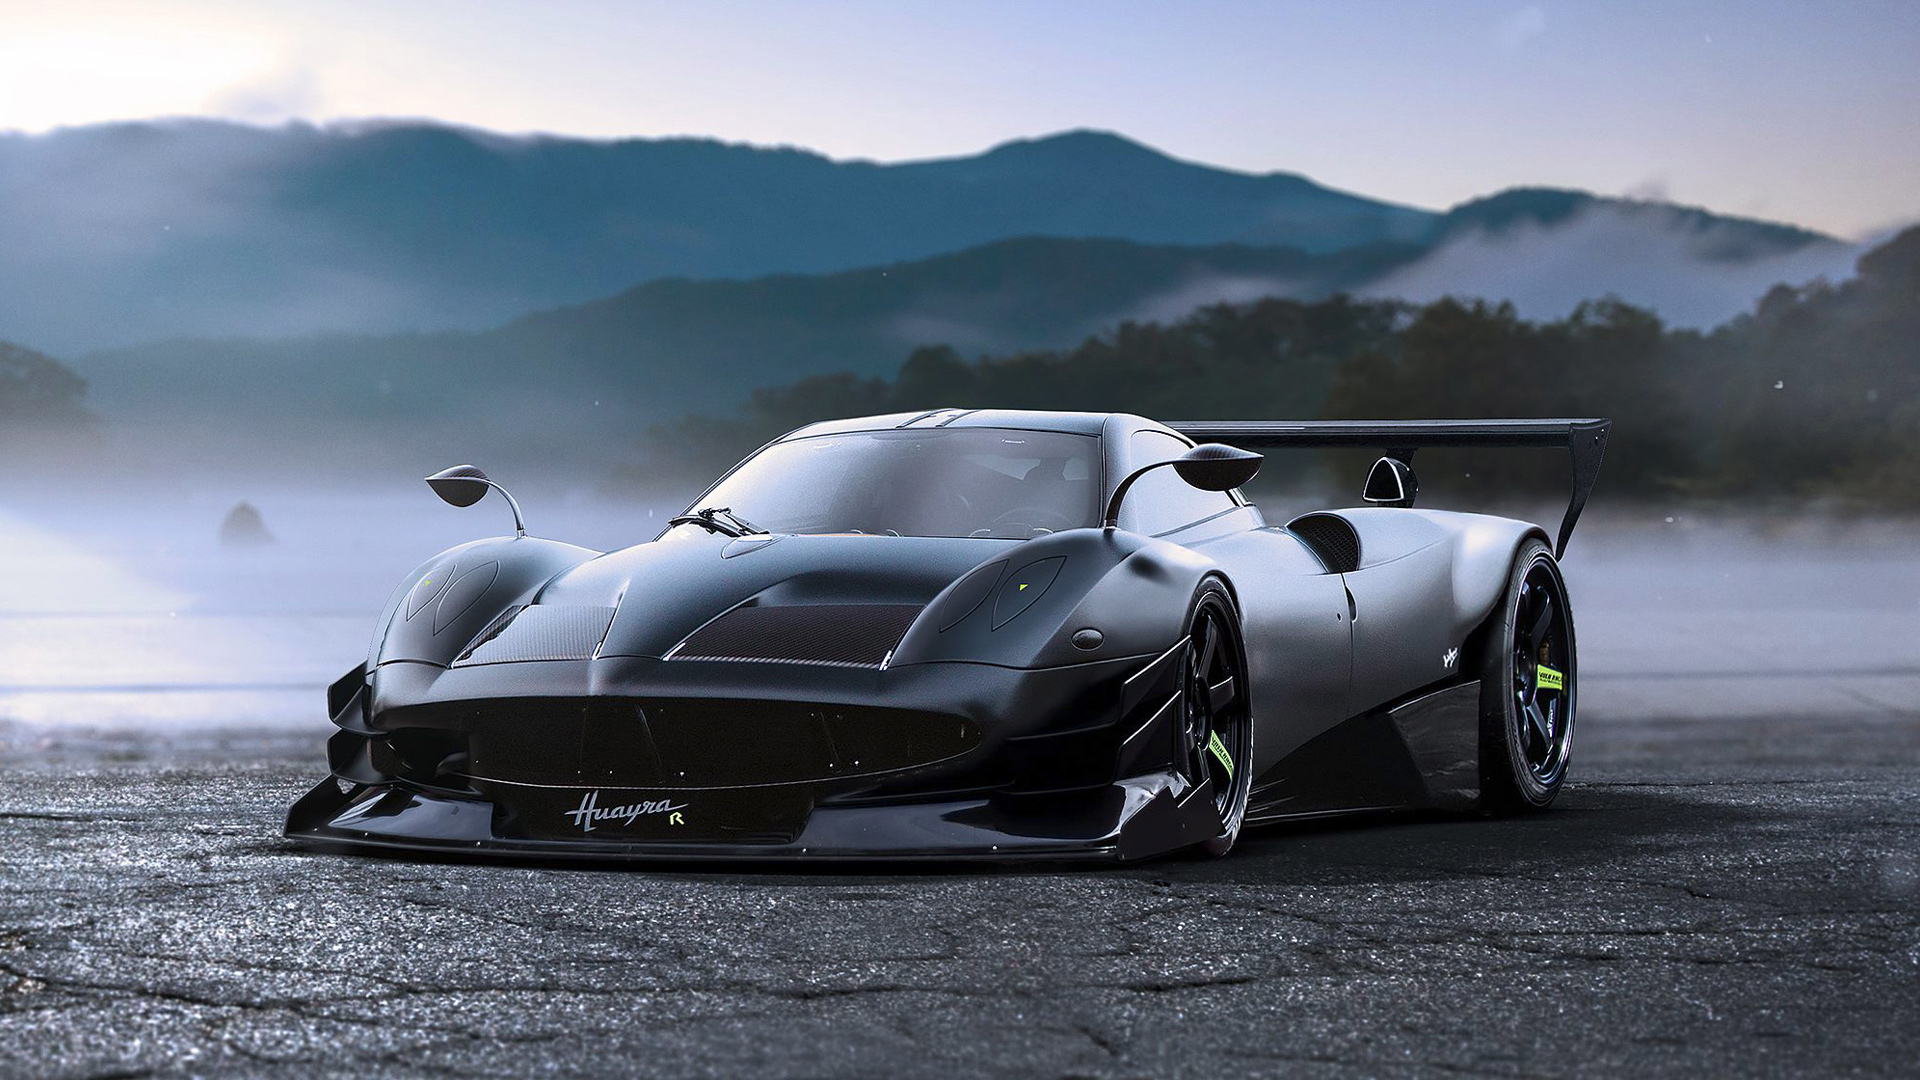 Pagani Huayra R Concept Wallpaper Hd Car Wallpapers Id